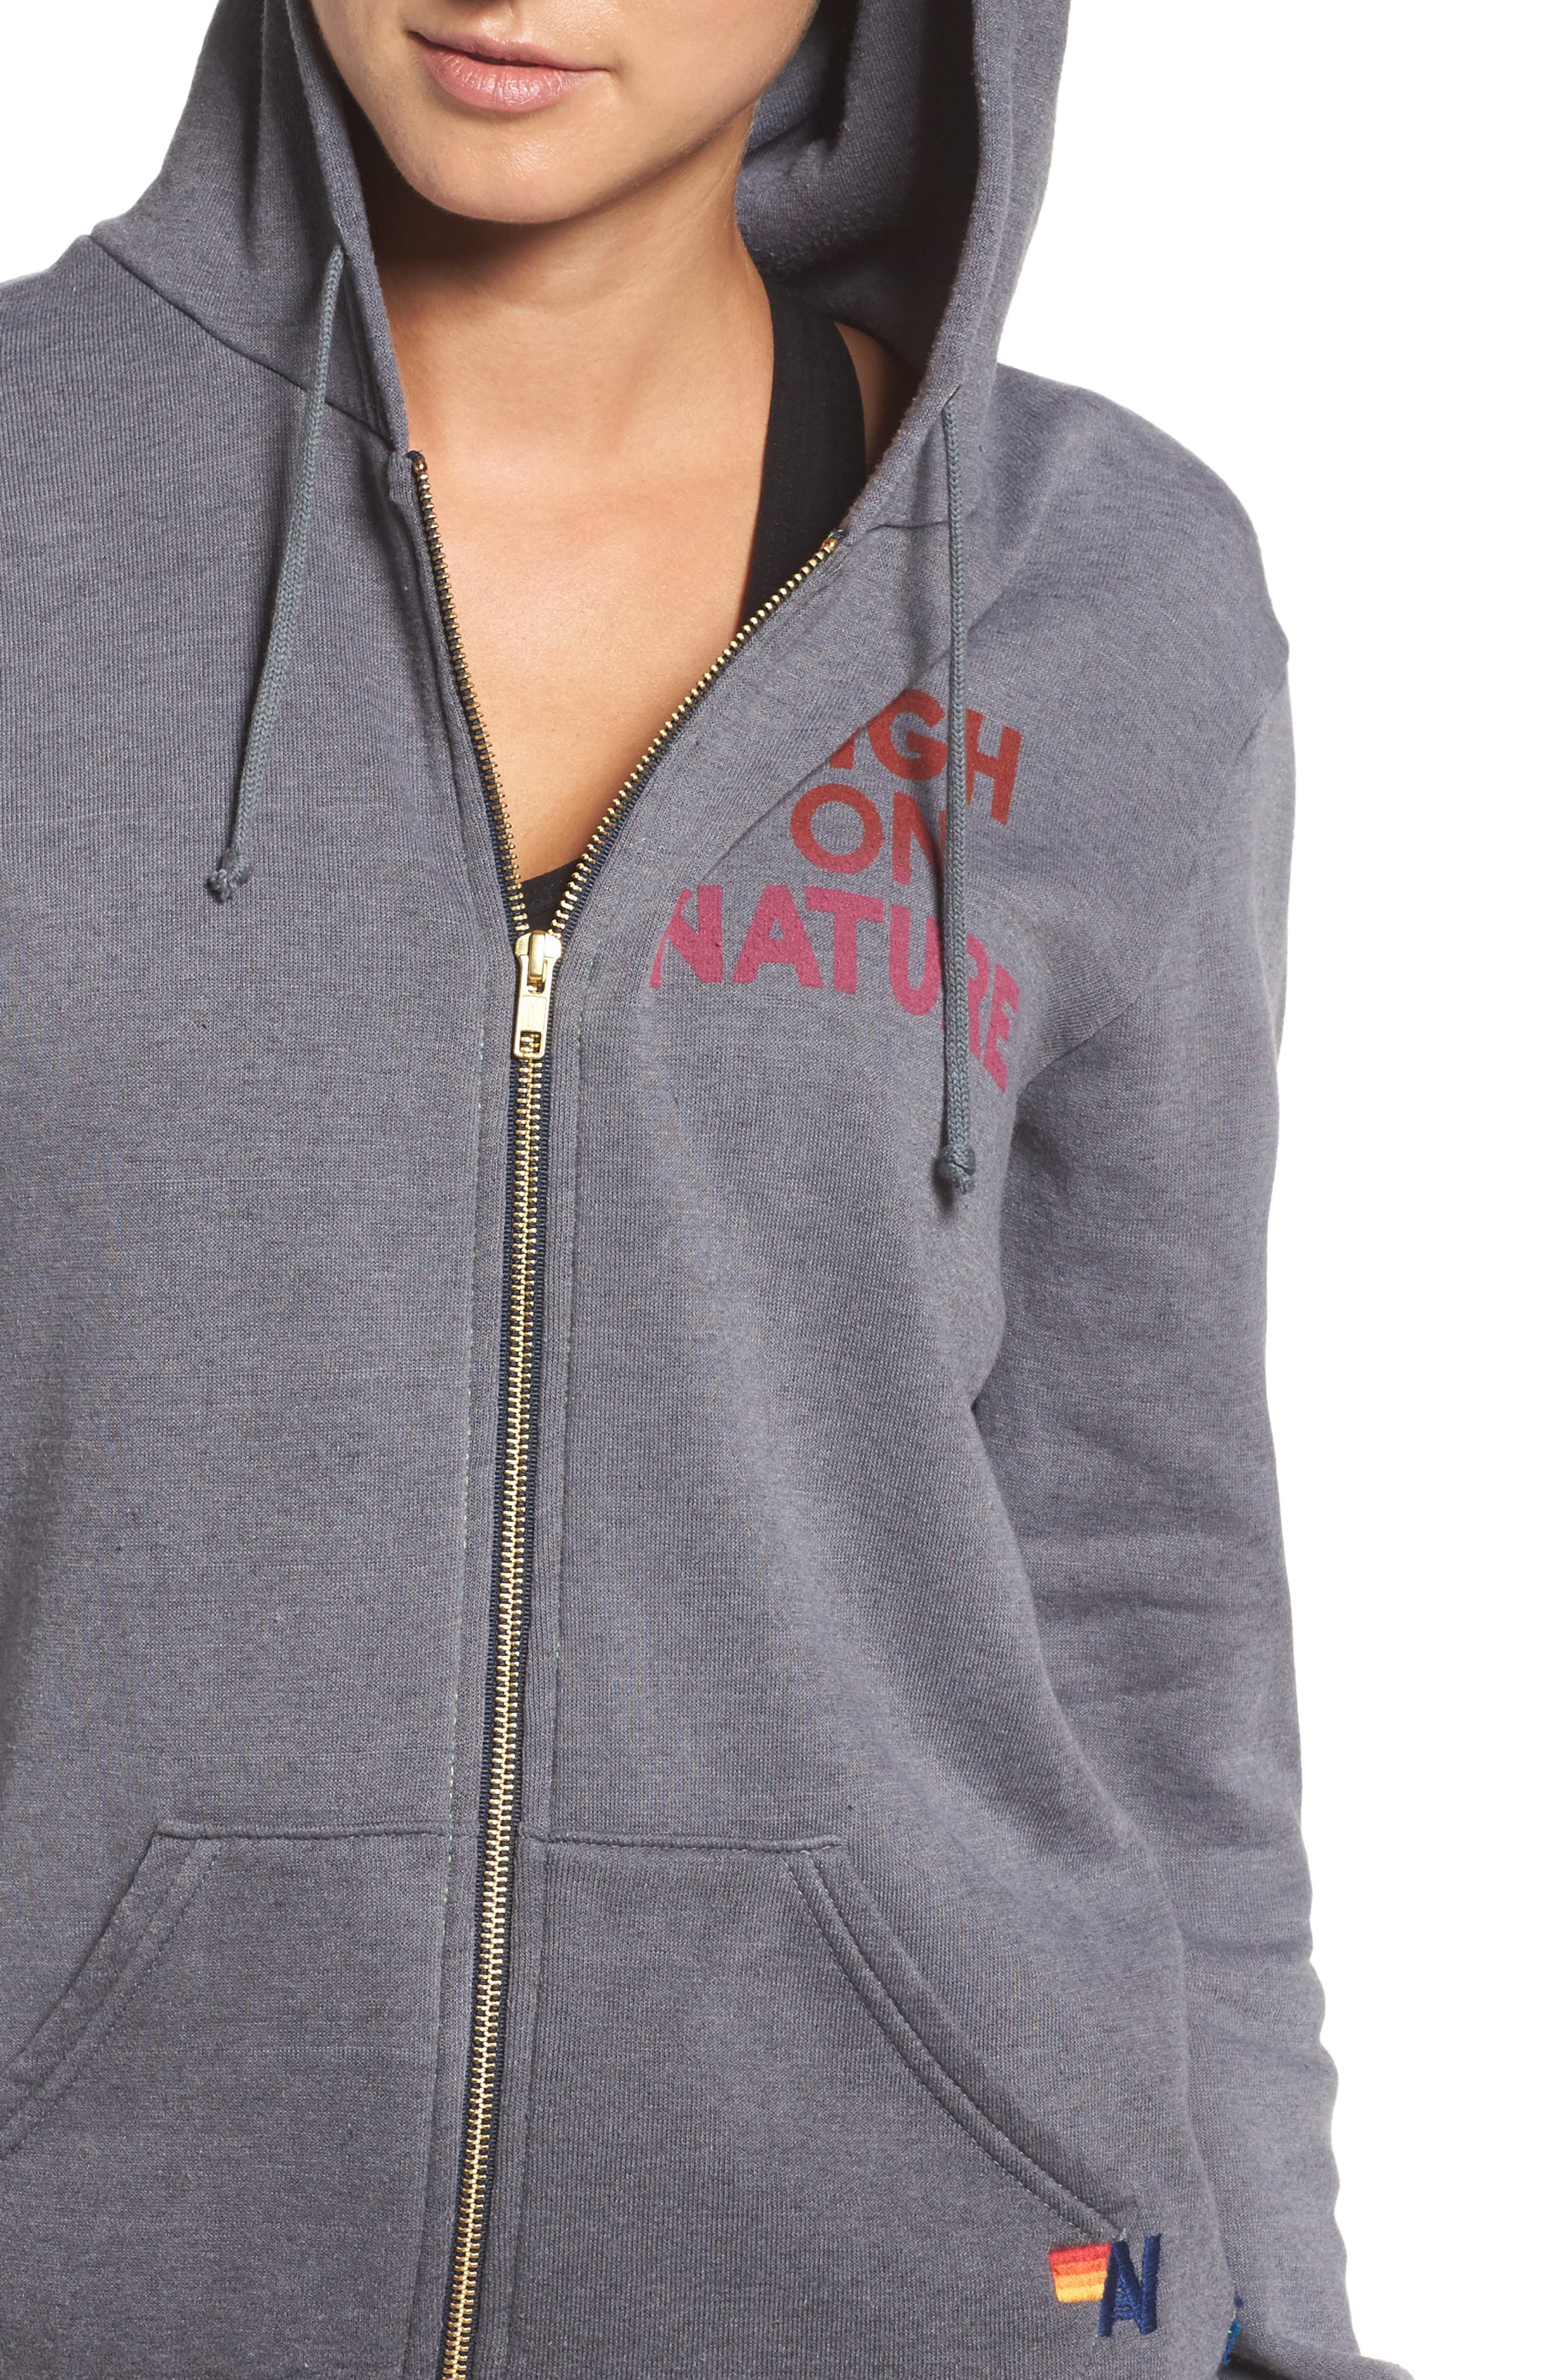 High on Nature Hoodie,                             Alternate thumbnail 4, color,                             020